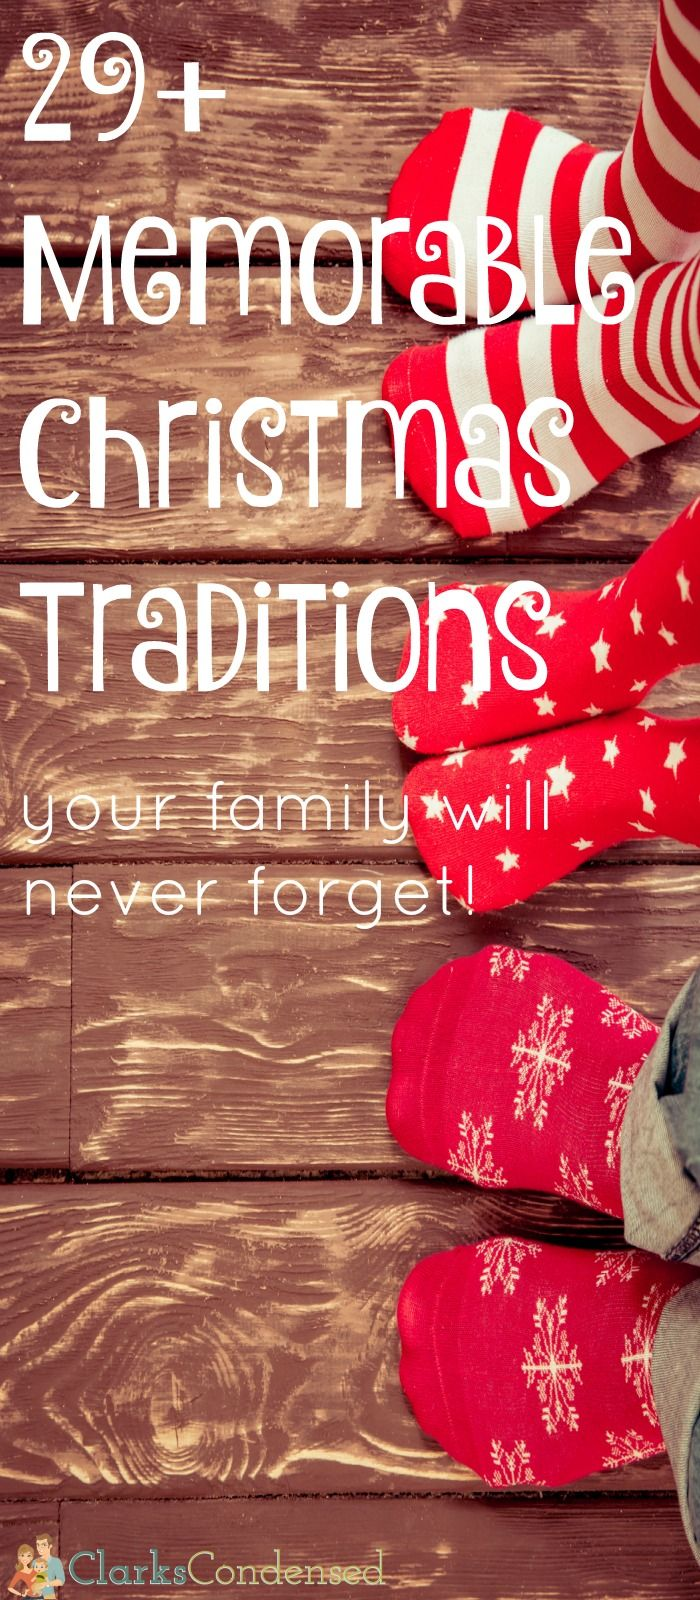 Christmas Traditions.30 Memorable Family Christmas Traditions Christmas